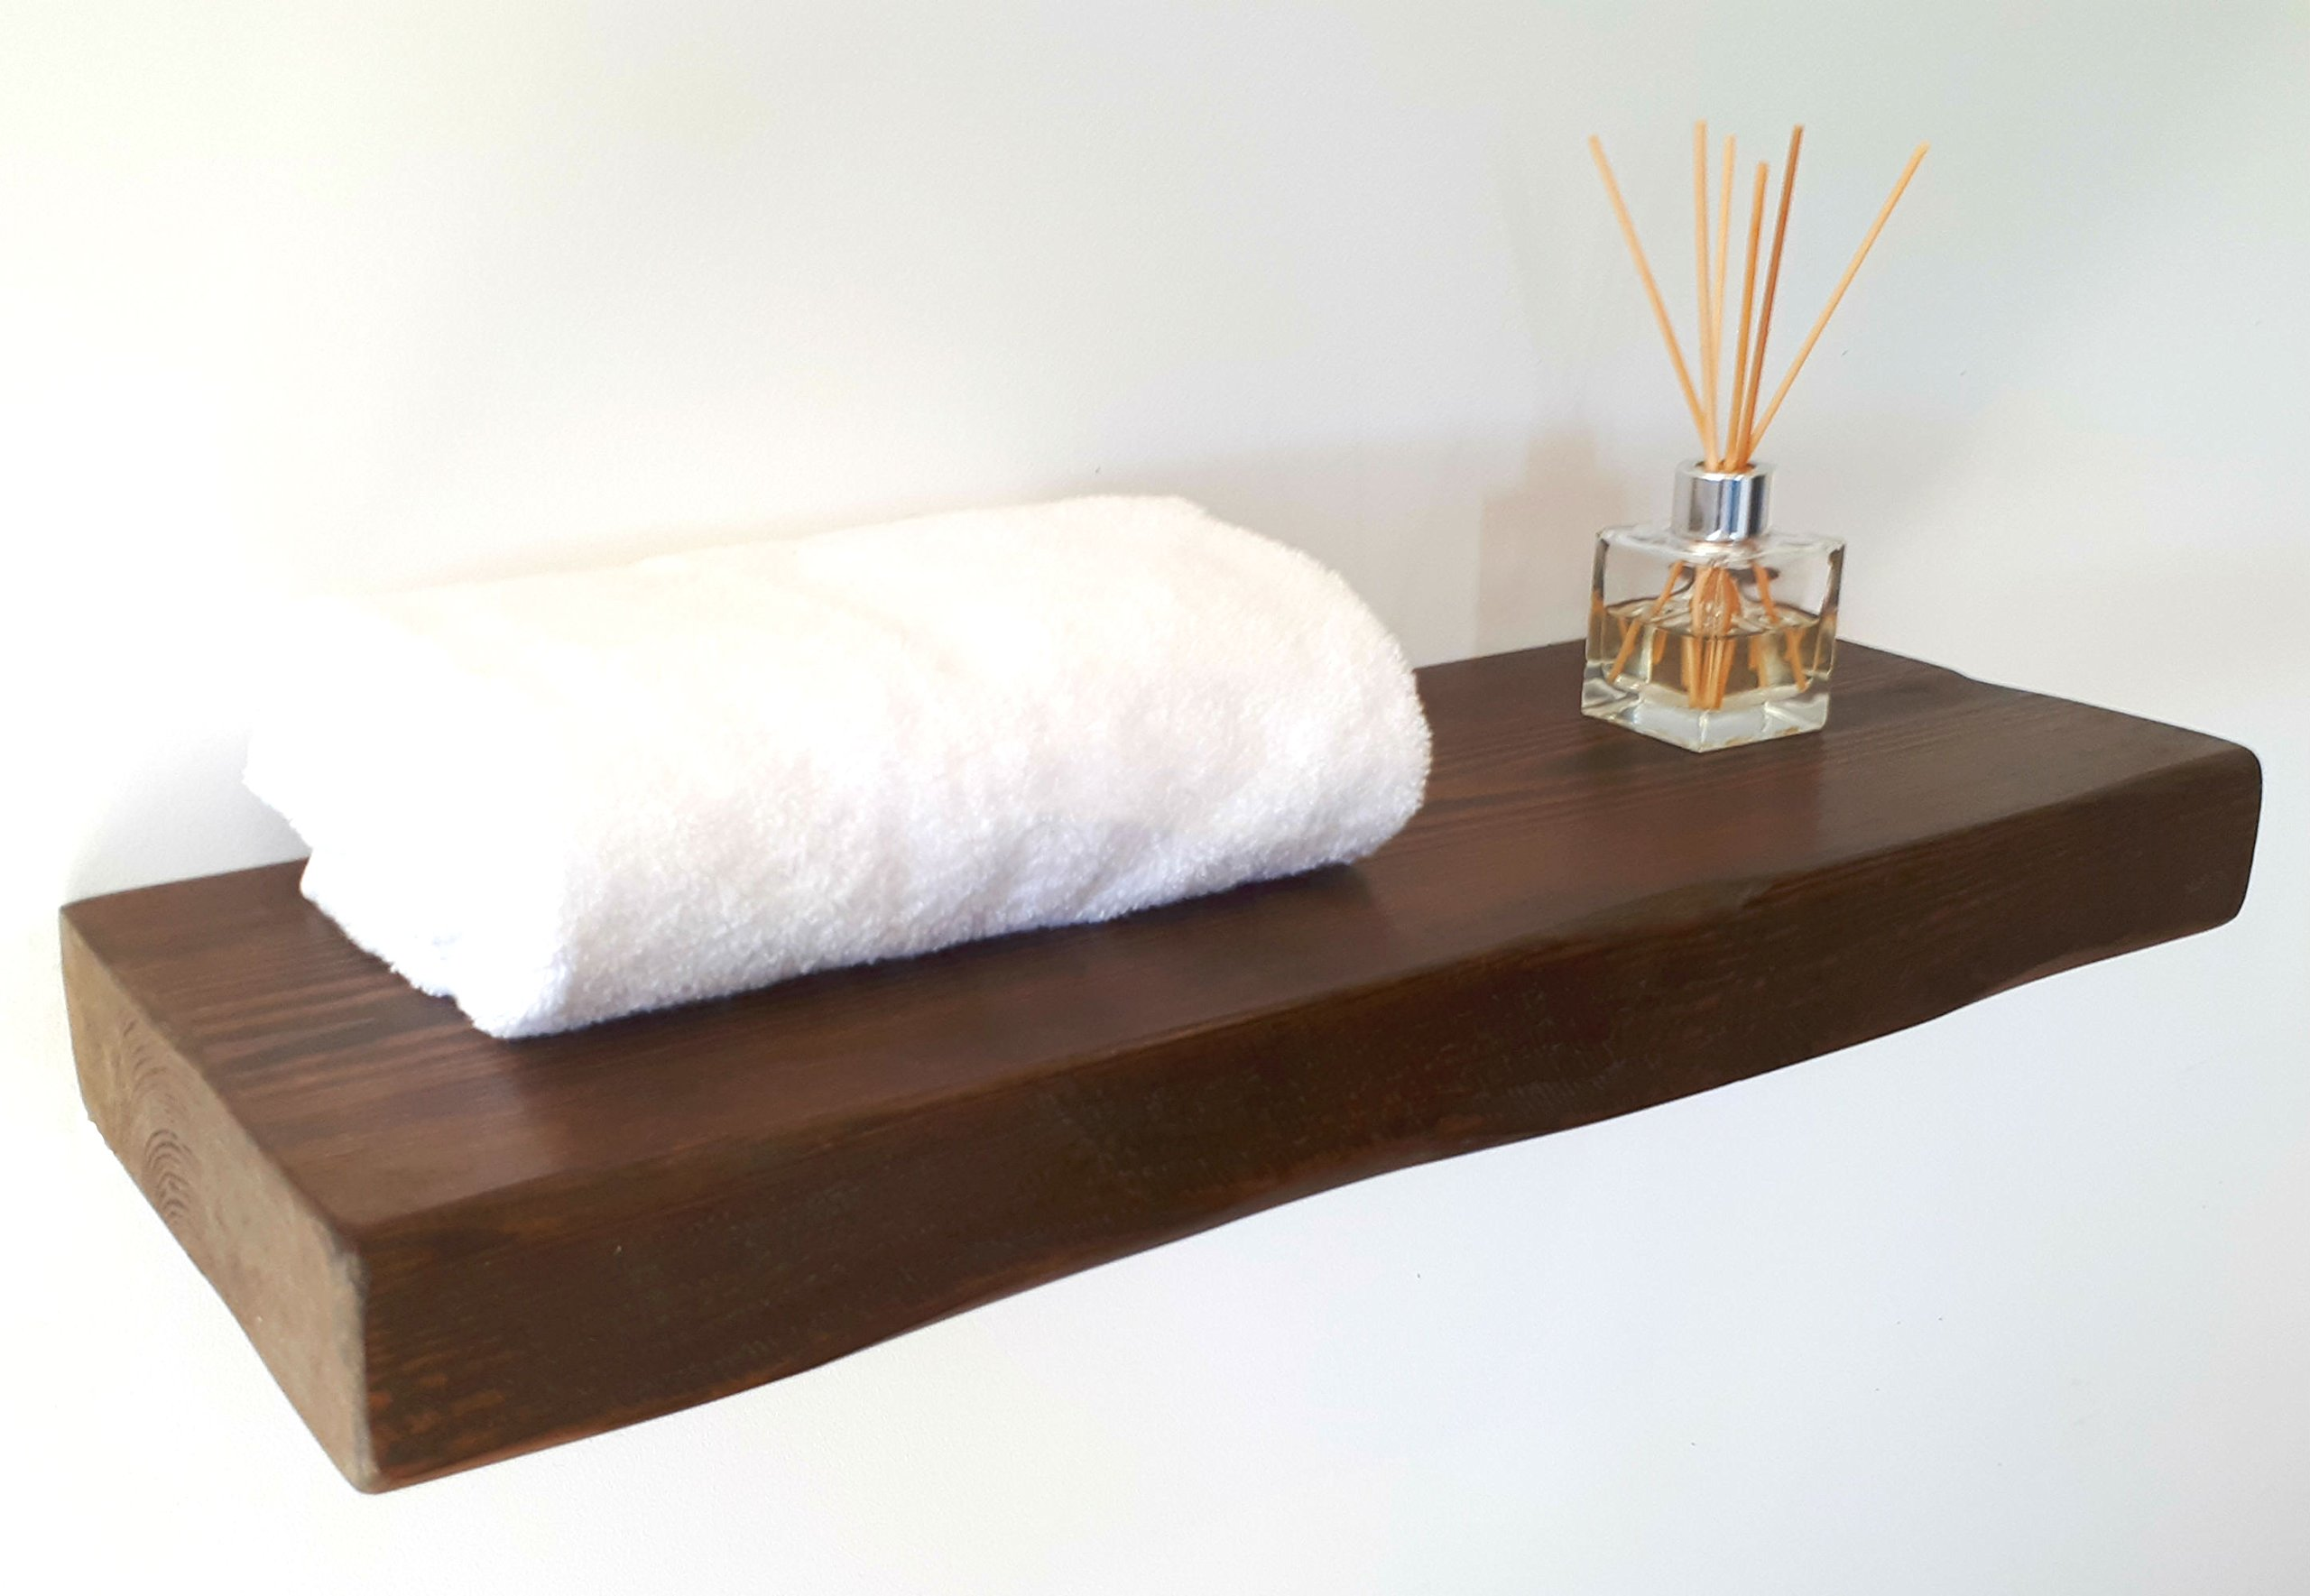 floating shelves reclaimed solid wood rustic wall shelf in dark oak finish 3 ft long perfect for living room kitchen bathroom office